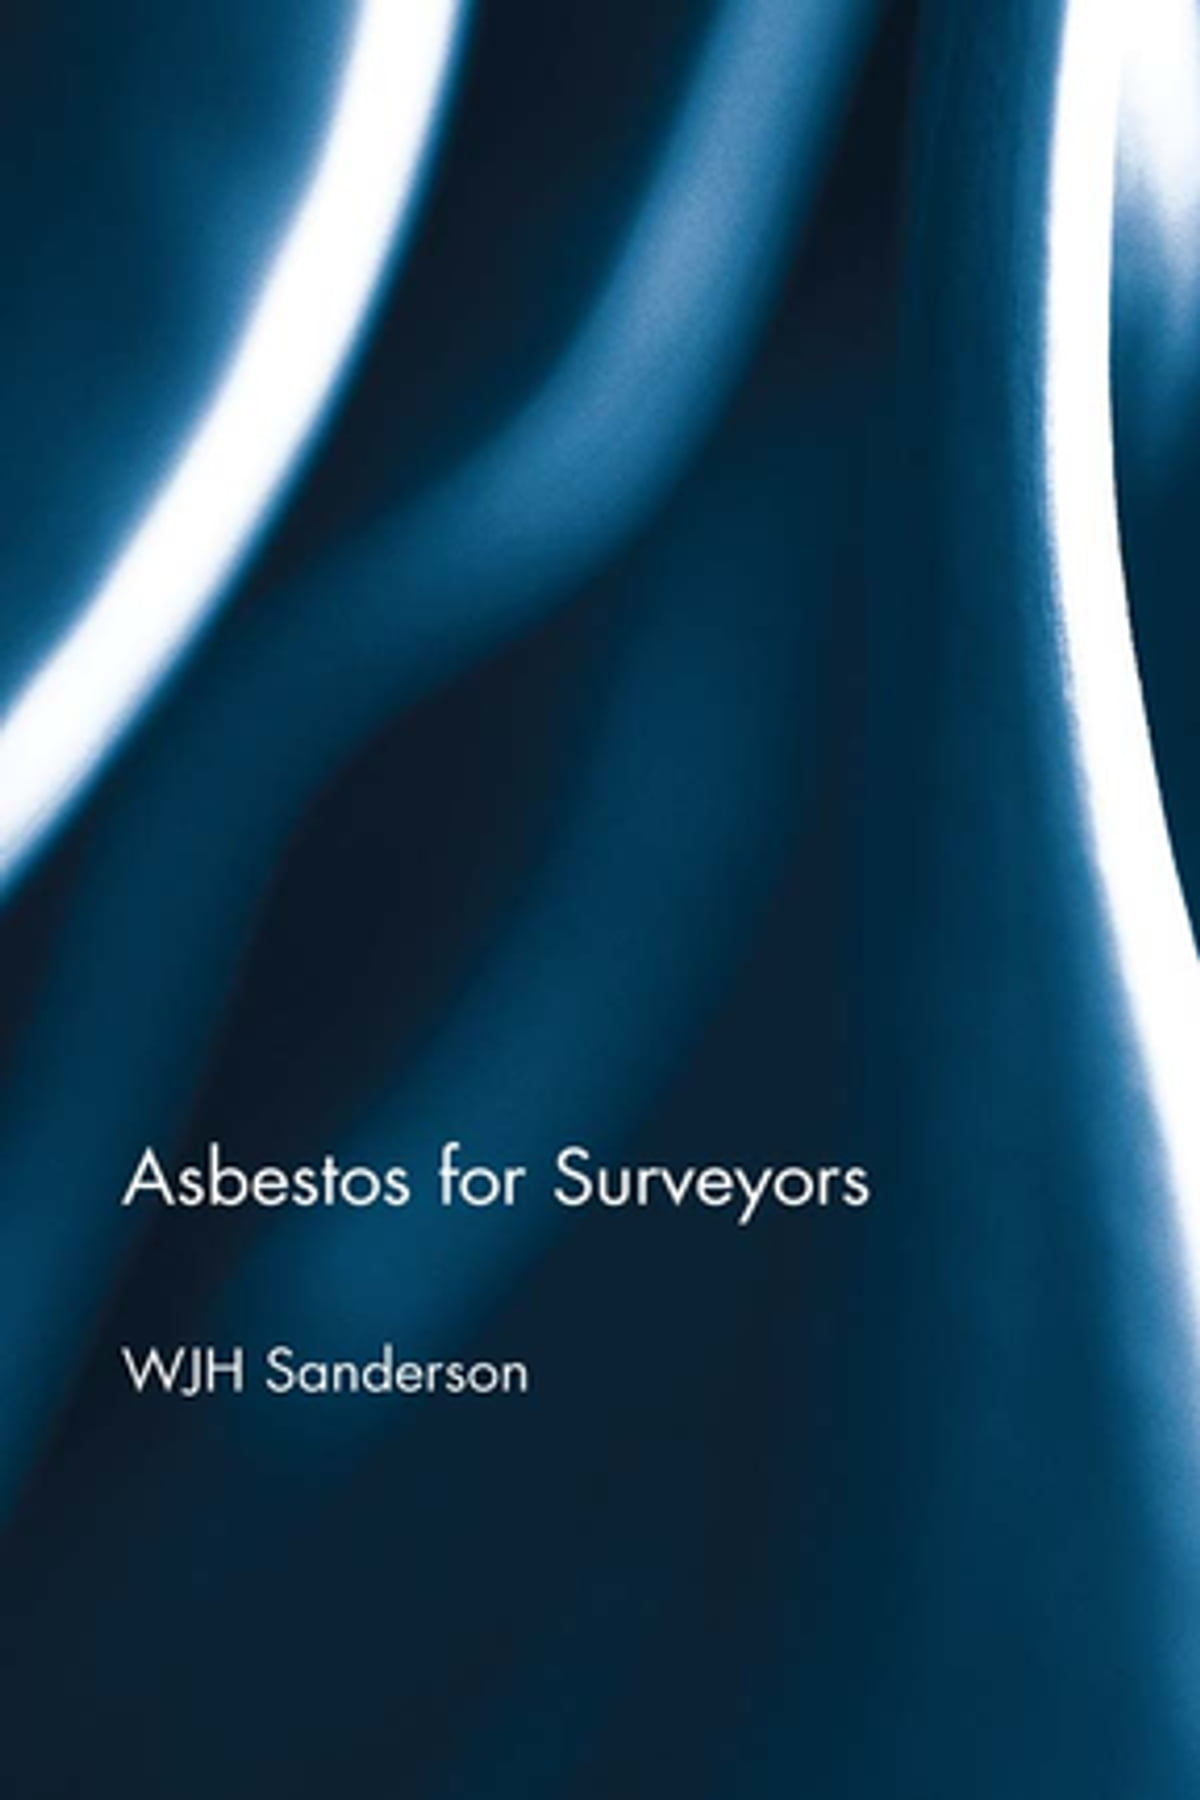 Asbestos for surveyors ebook by bill sanderson 9781135332853 asbestos for surveyors ebook by bill sanderson 9781135332853 rakuten kobo fandeluxe Image collections